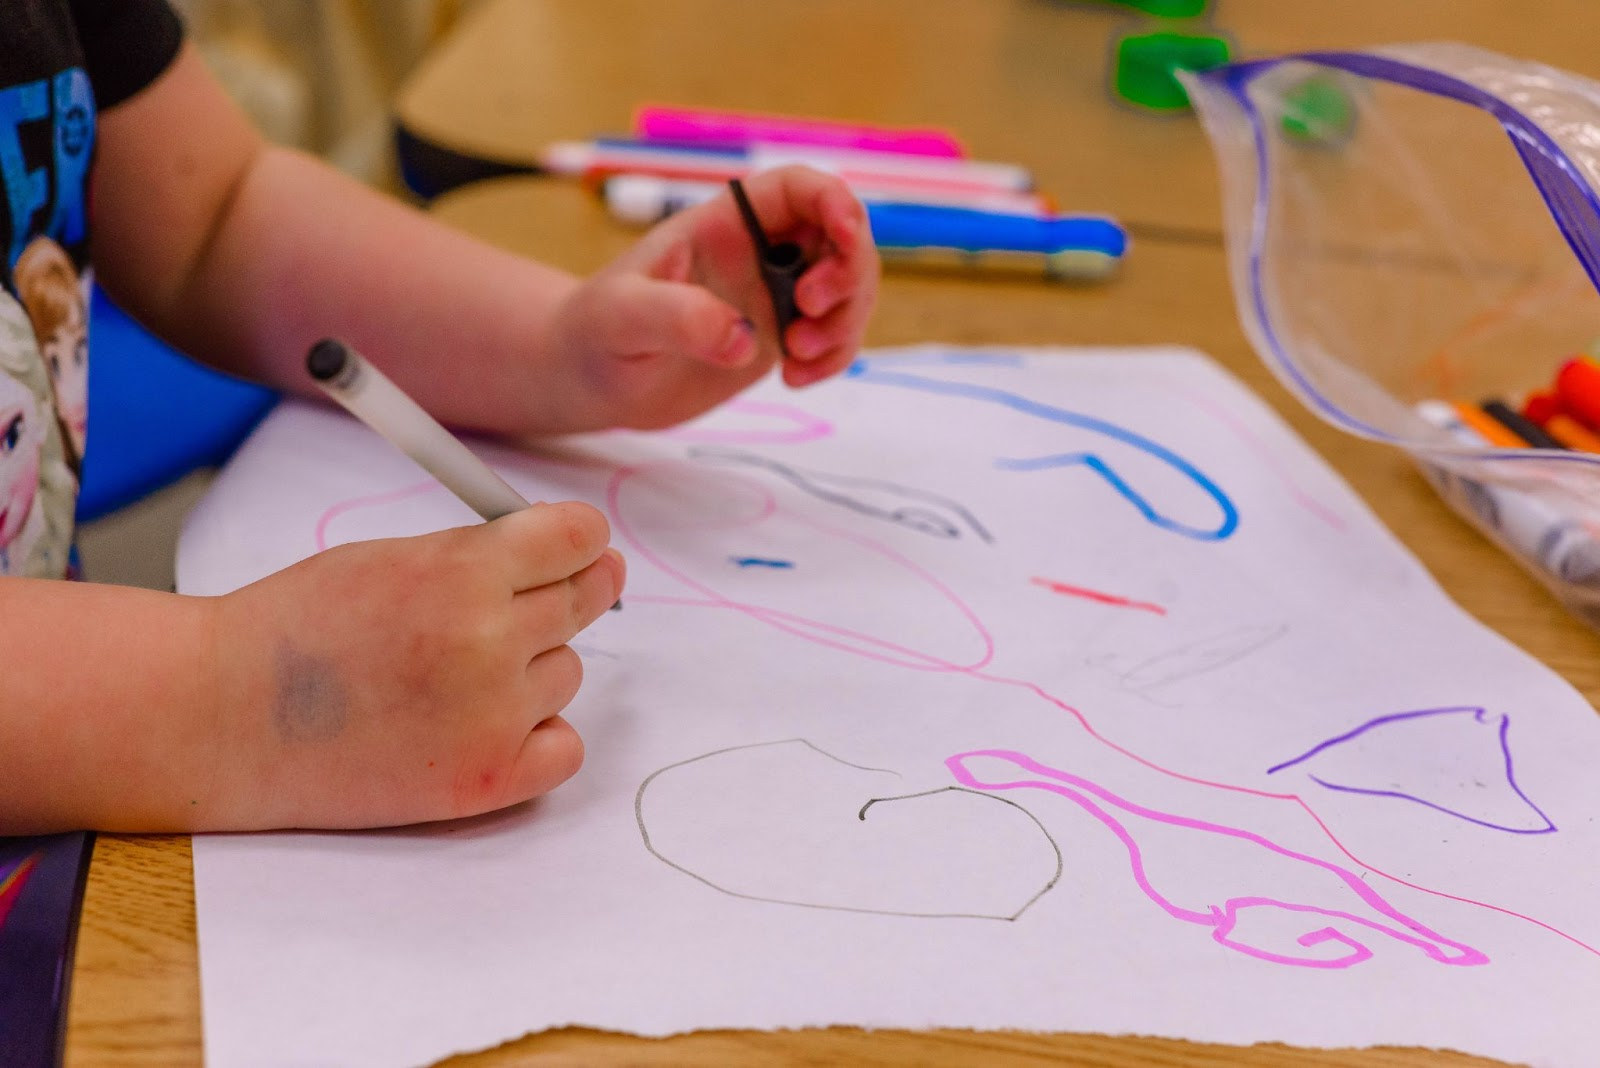 When And How Does My Child Develop Their Motor Skills?